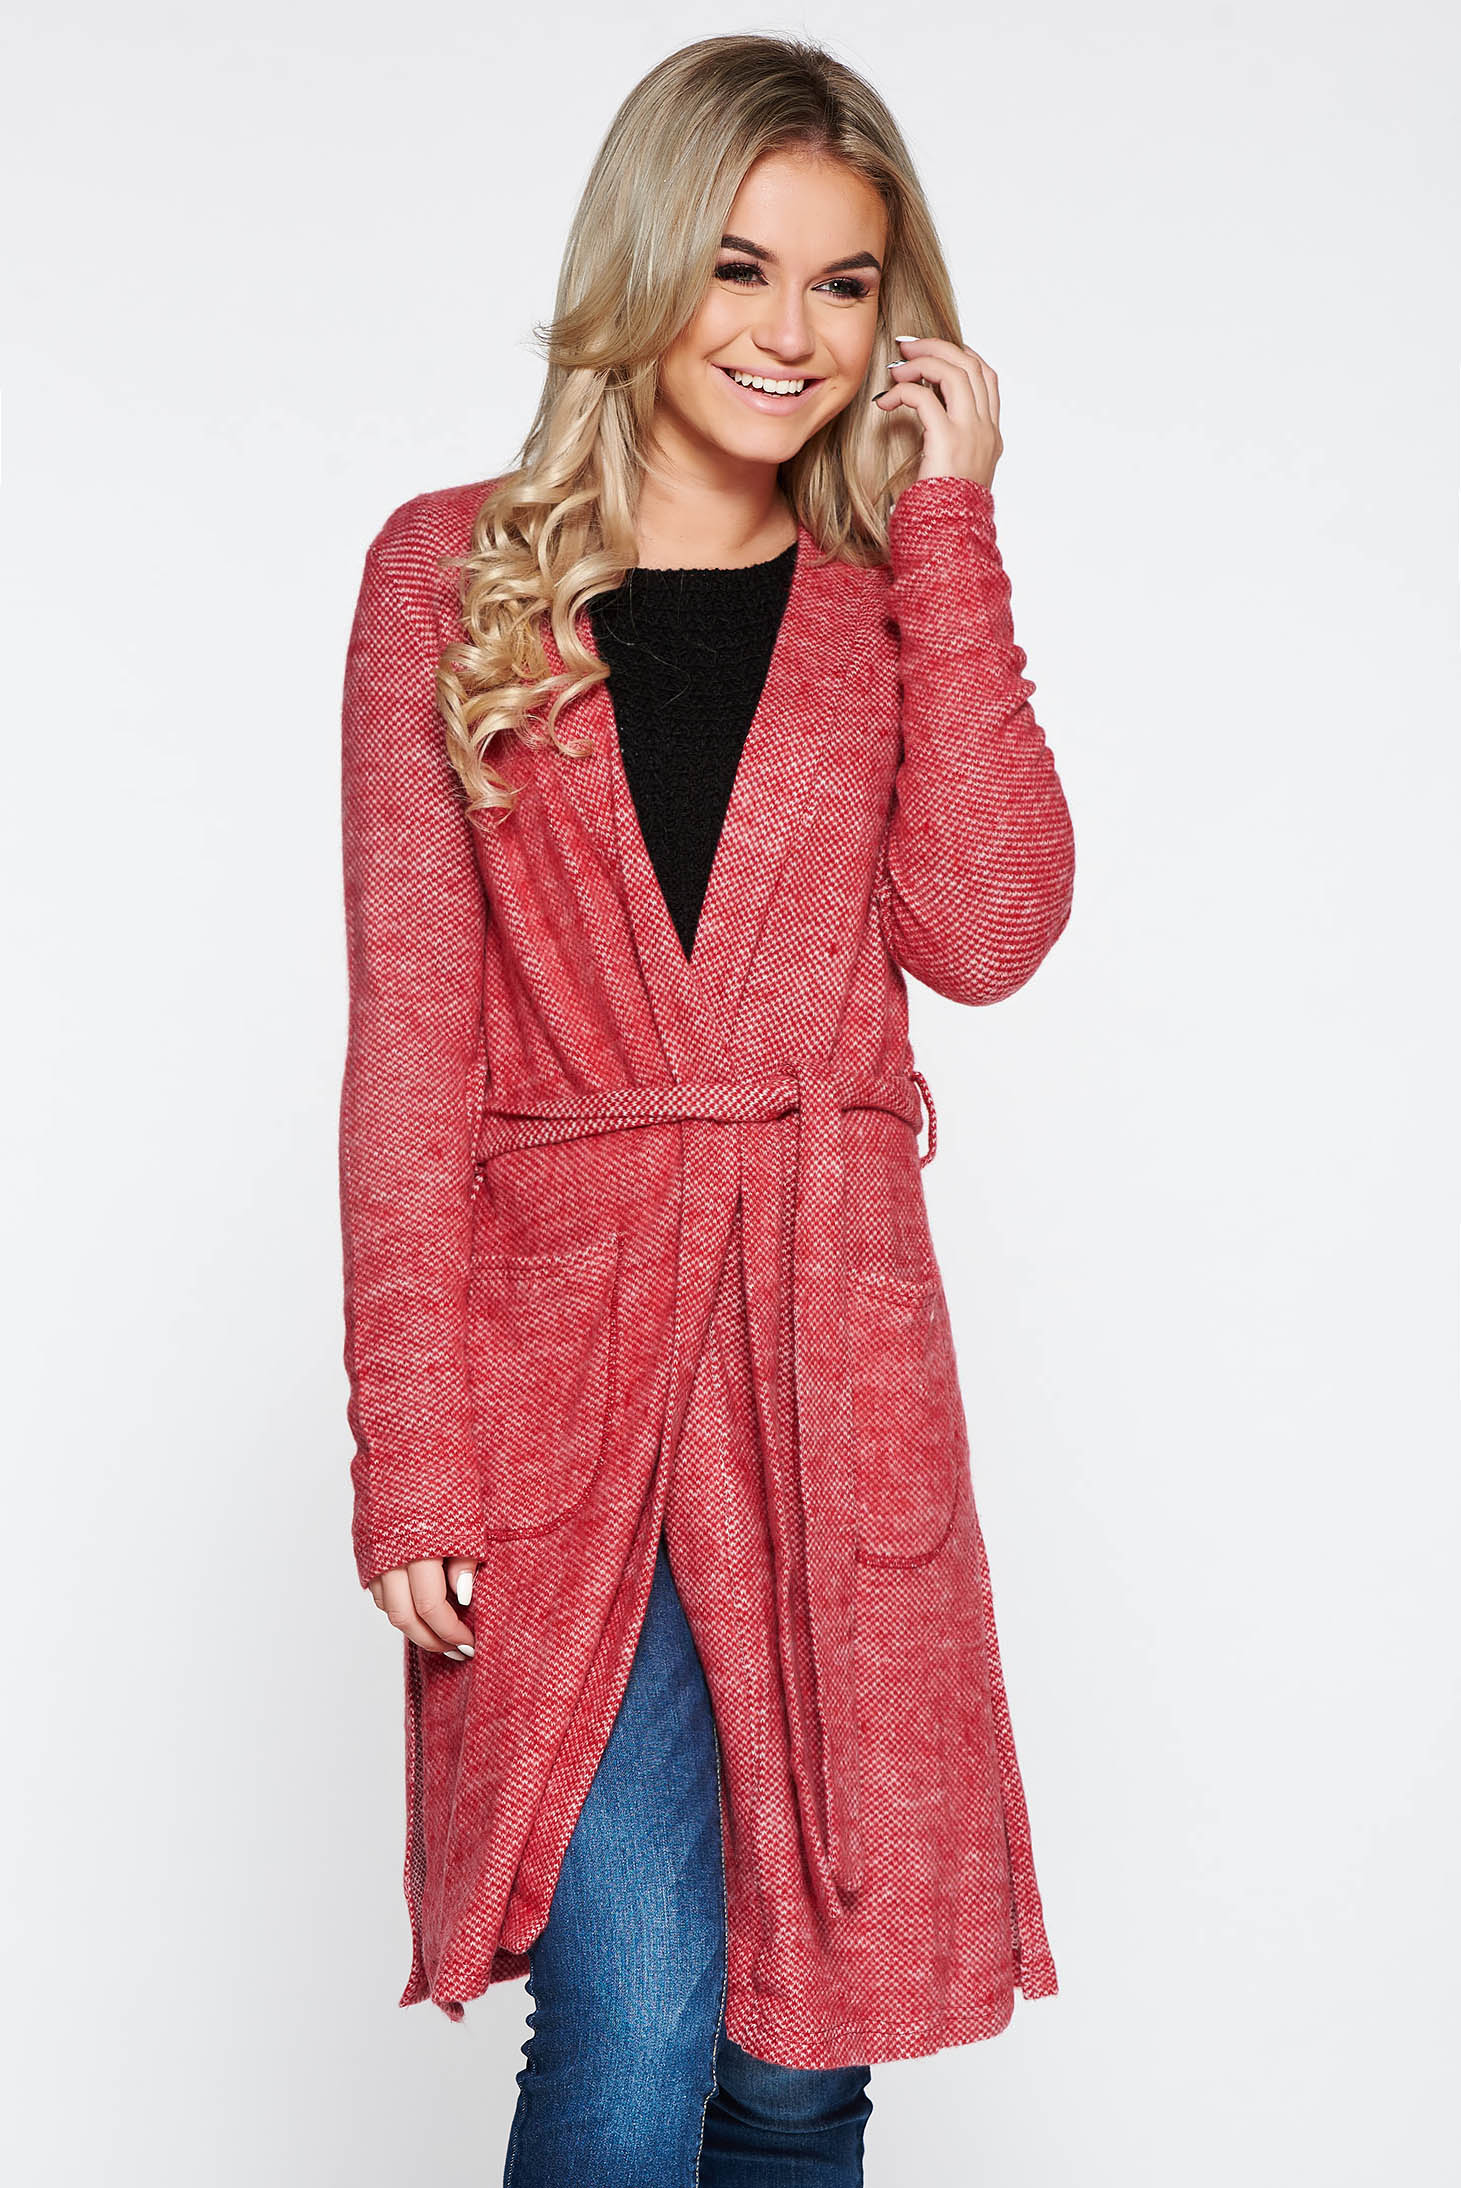 PrettyGirl red knitted cardigan fluffy fabric accessorized with tied waistband